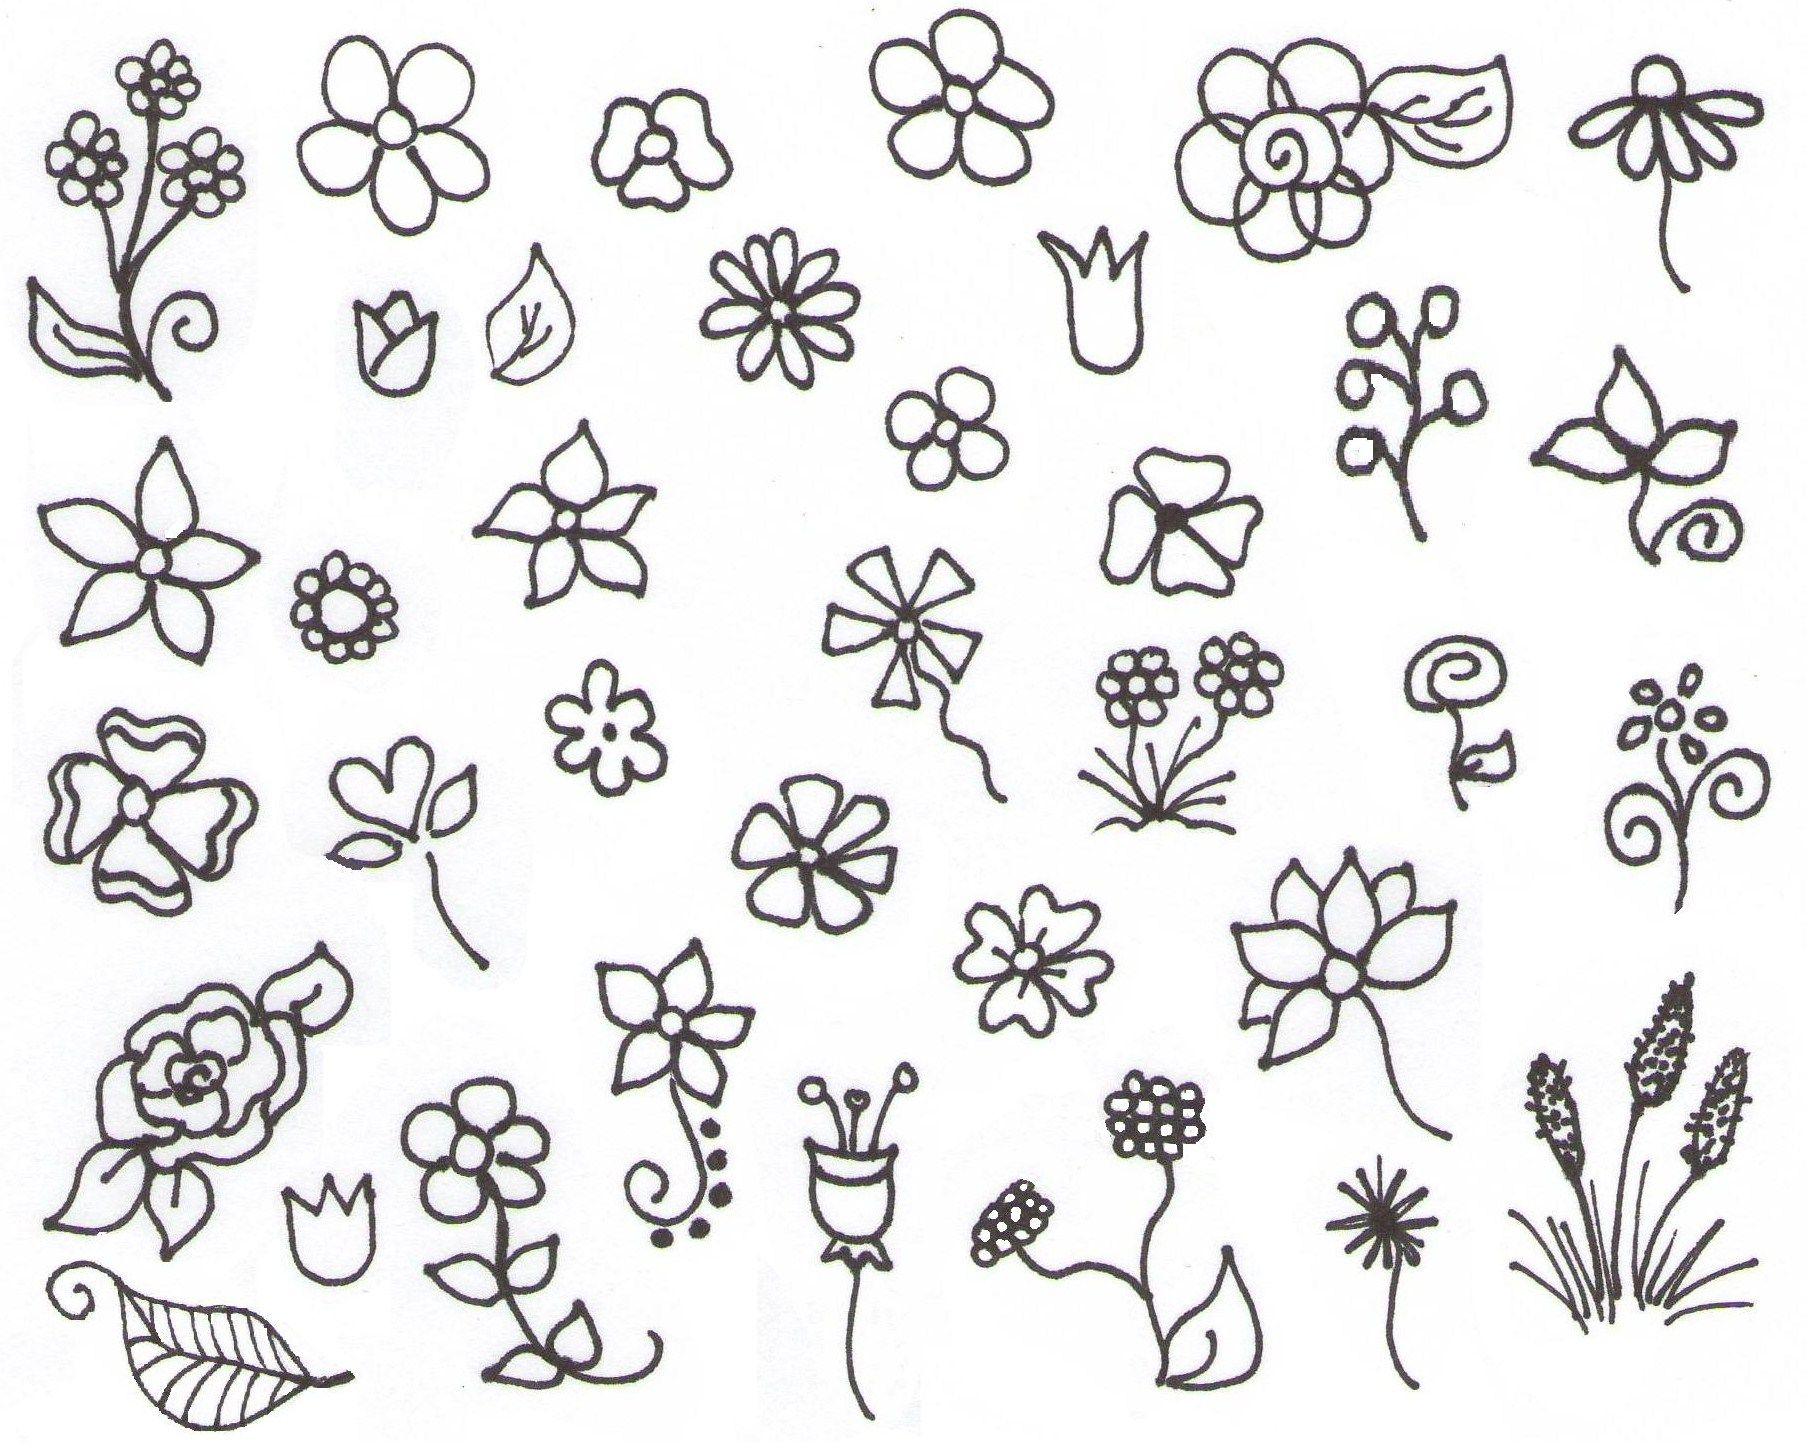 Easy Doodle Art Designs : My inspiration — flower doodles simple